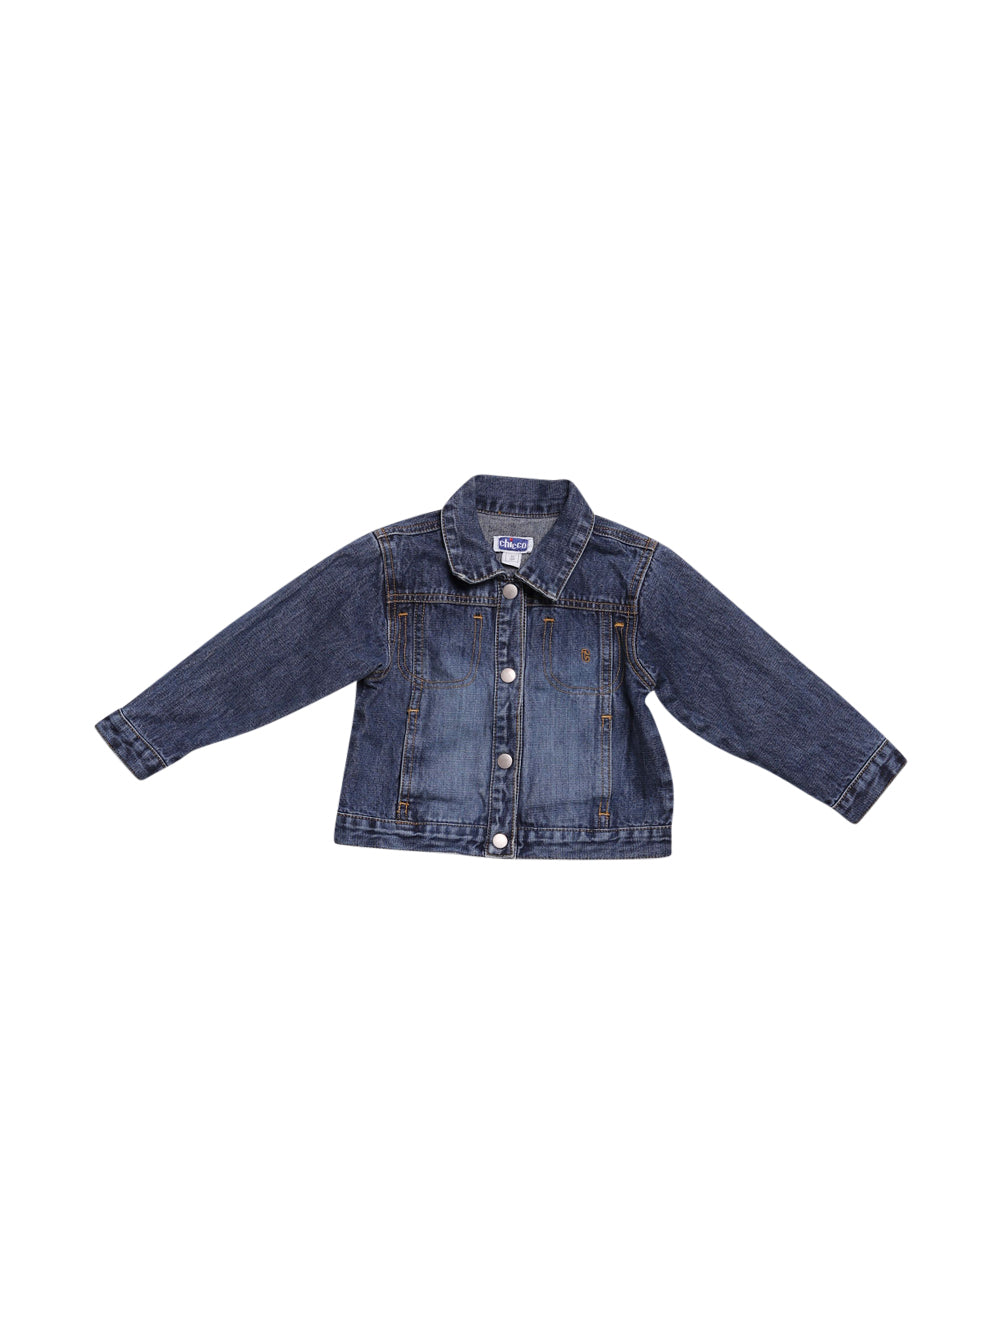 Front photo of Preloved Chicco Blue Boy's jacket - size 9-12 mths